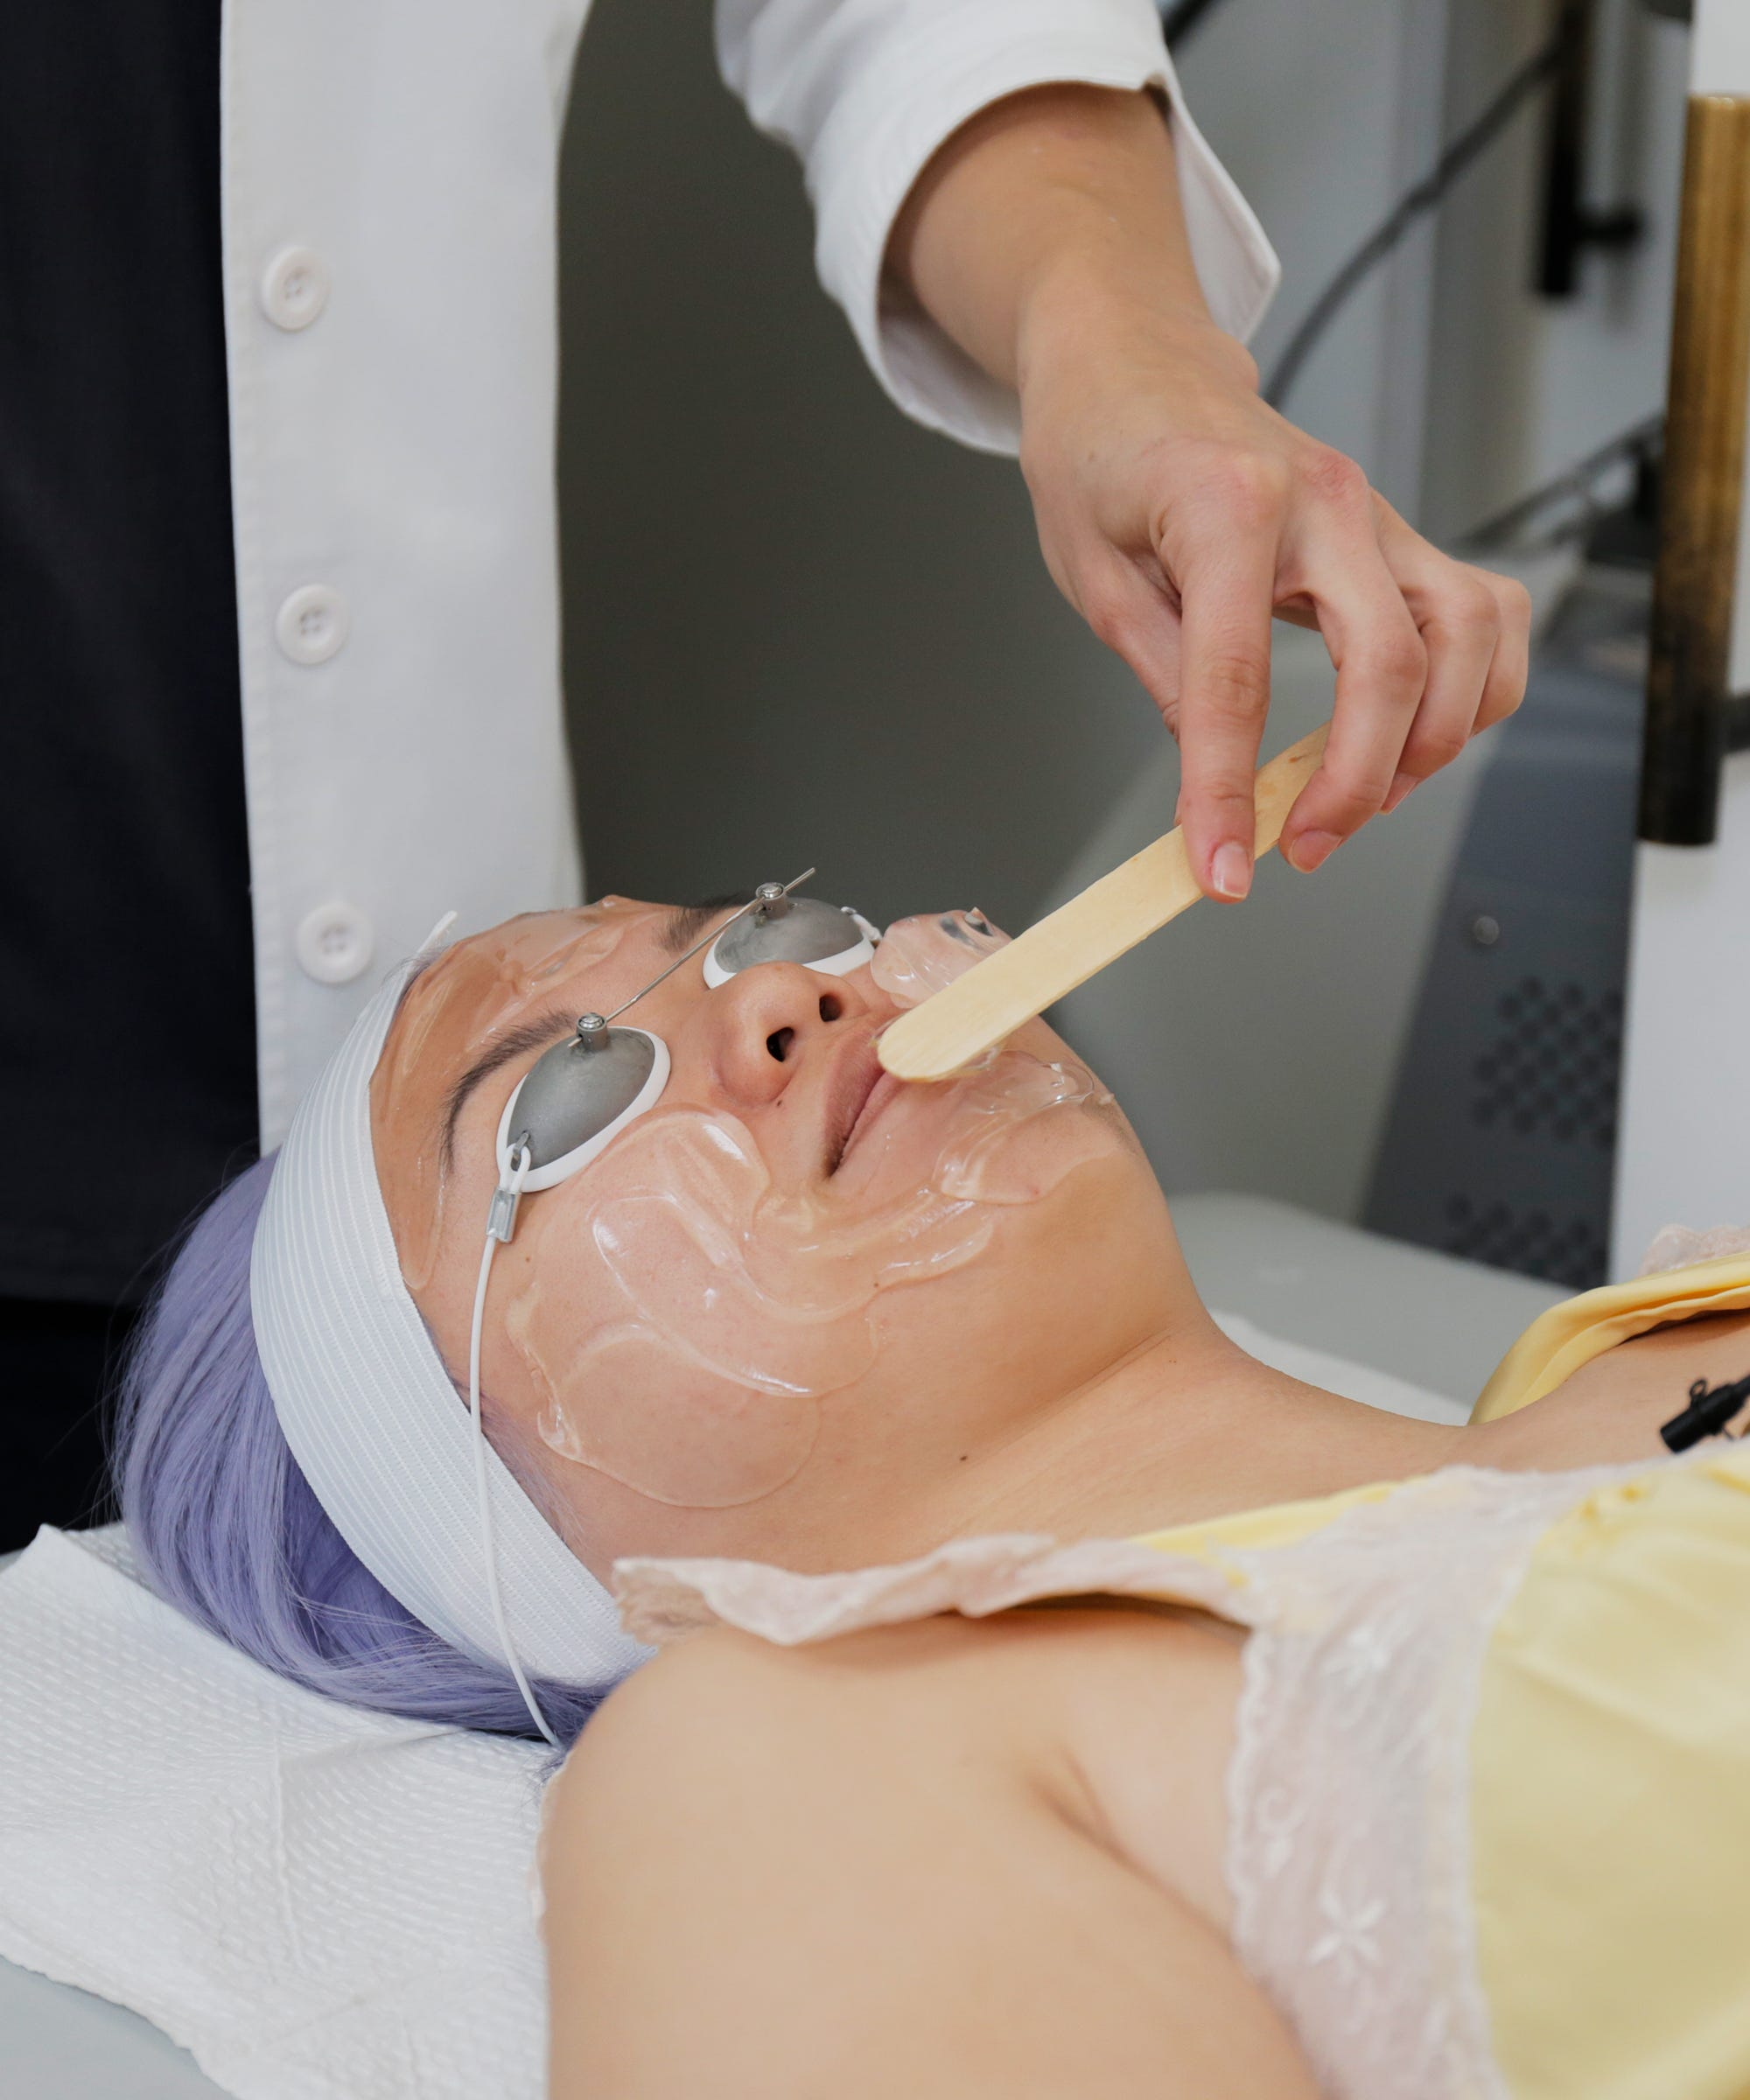 Skin Laundry 15 Minute Laser Facial Review